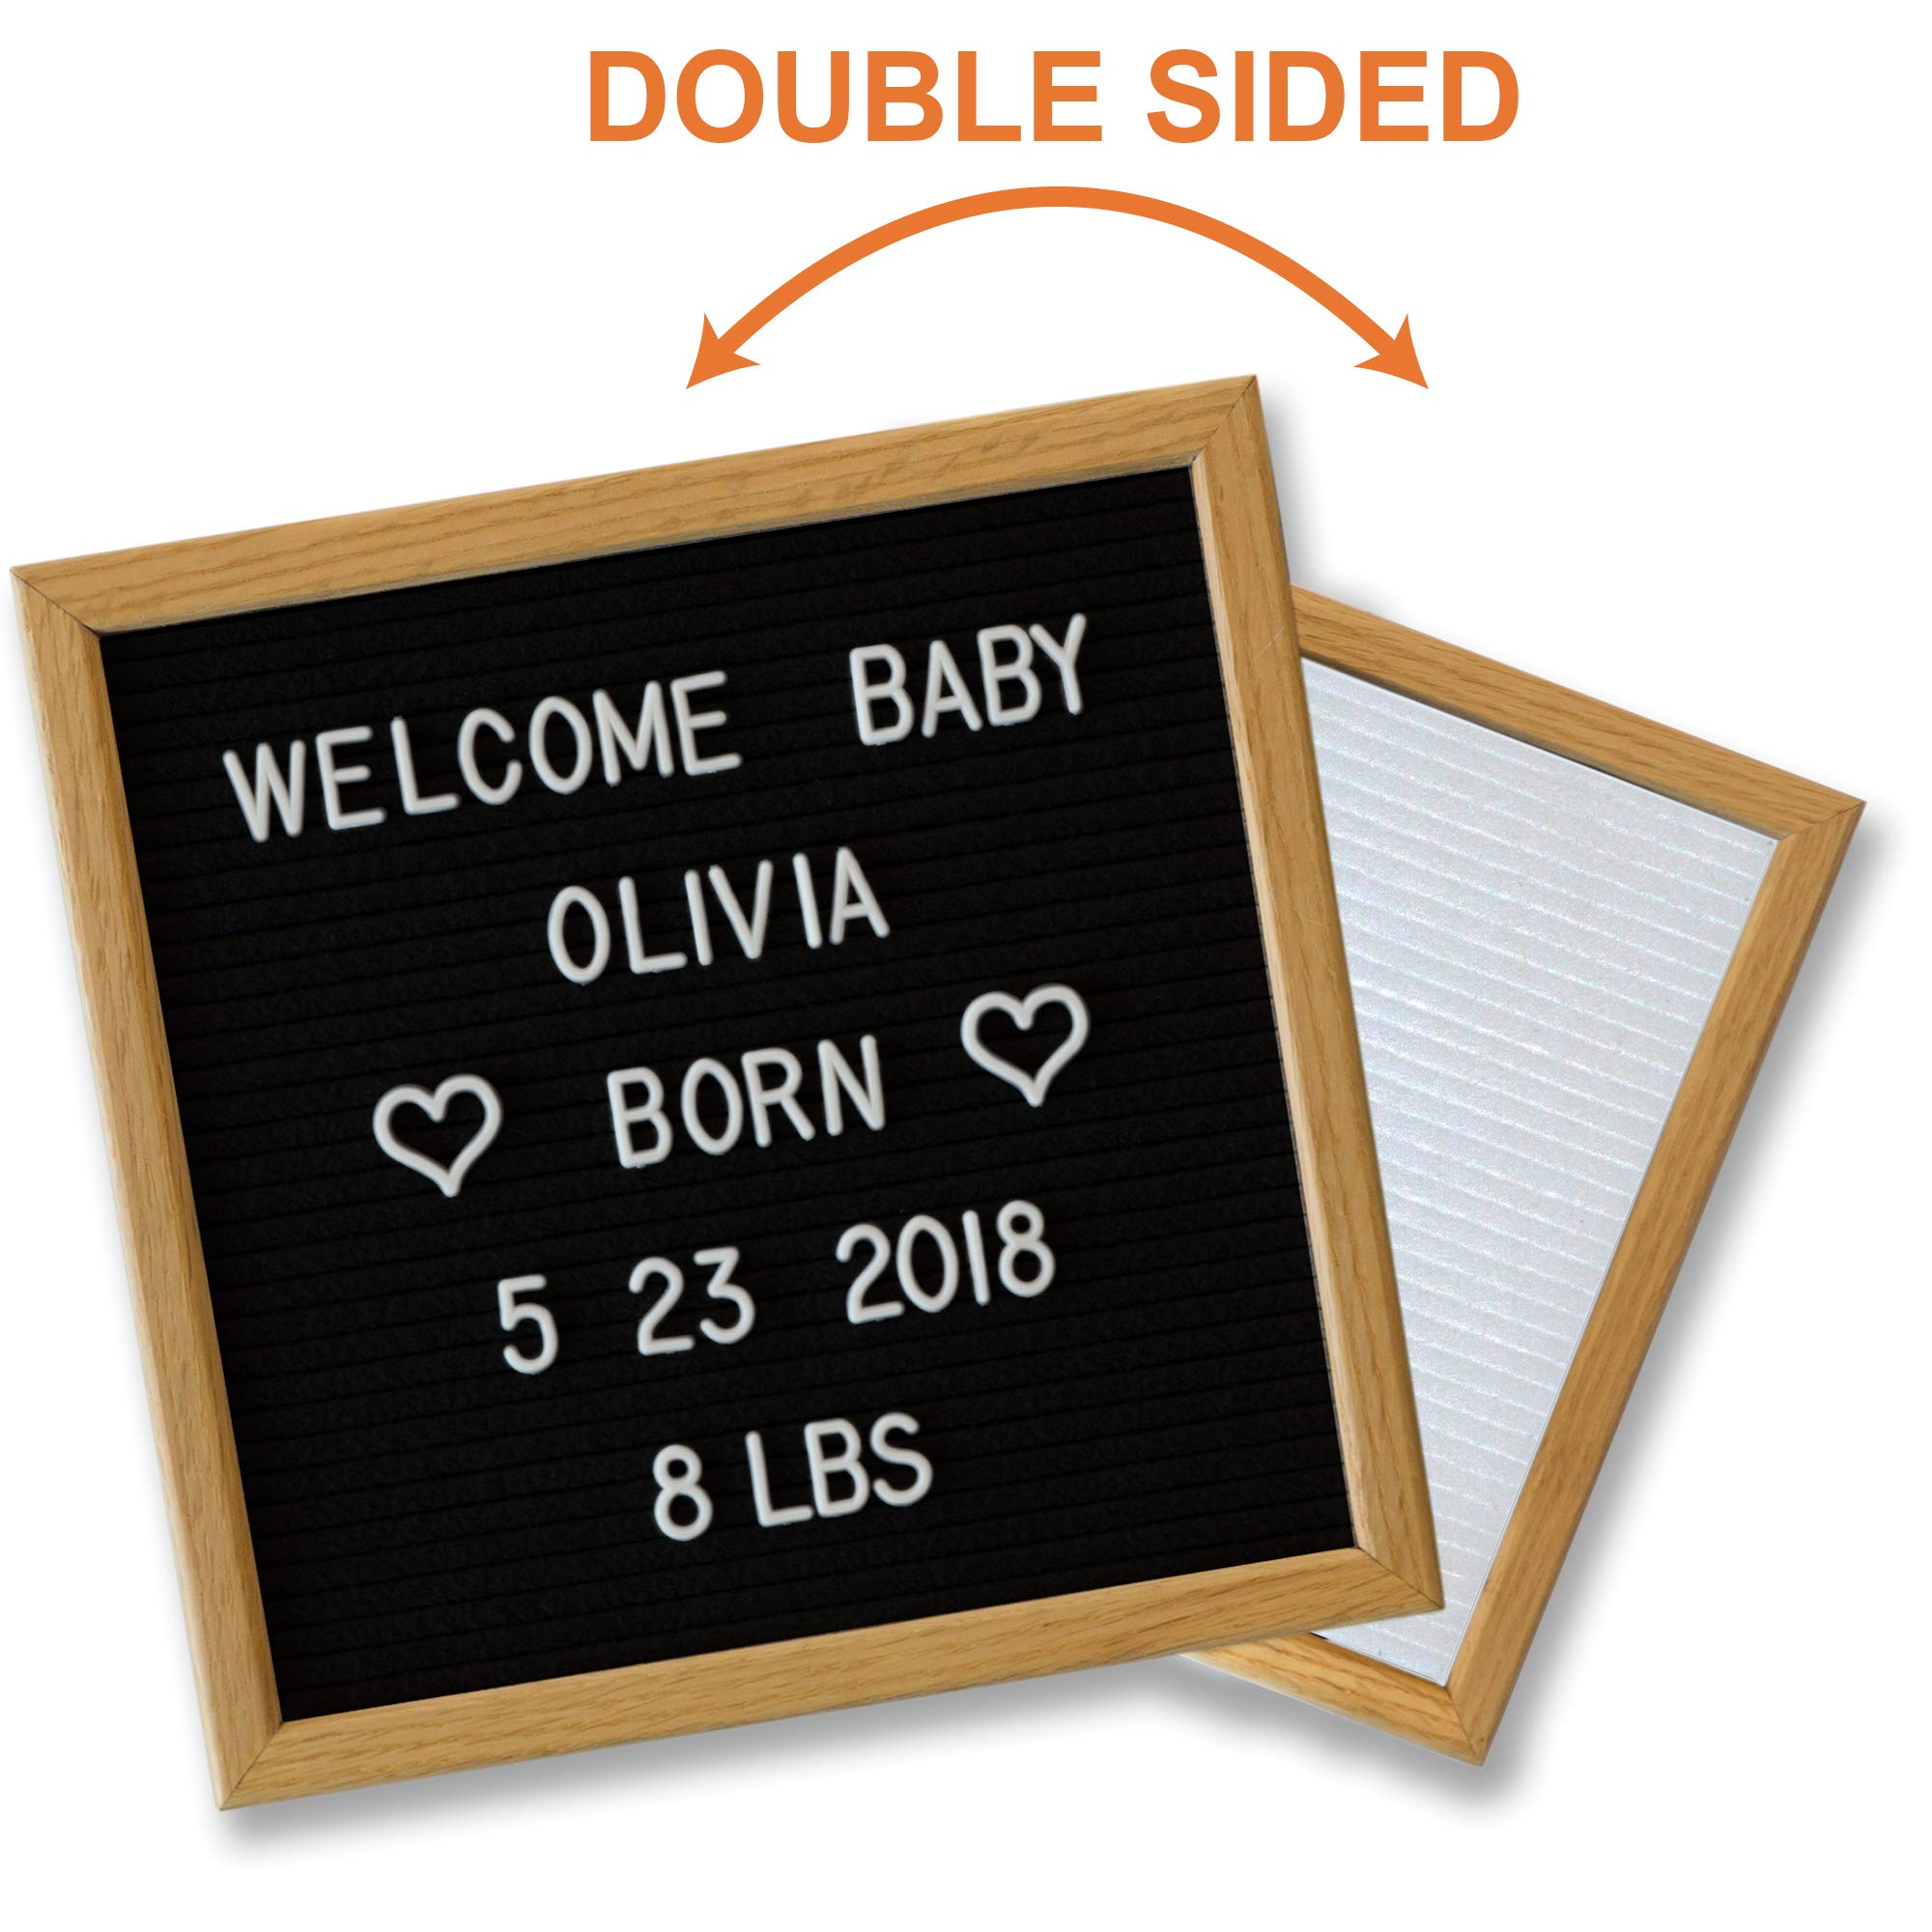 Black Letter Board White Double Sided 10x10, Stylish Stand and 600 Changeable Letters. American Oak Frame. Baby Announcement Board, Baby Shower Gift, Personalized Messaging Home. by Livvy Creations (Image #7)